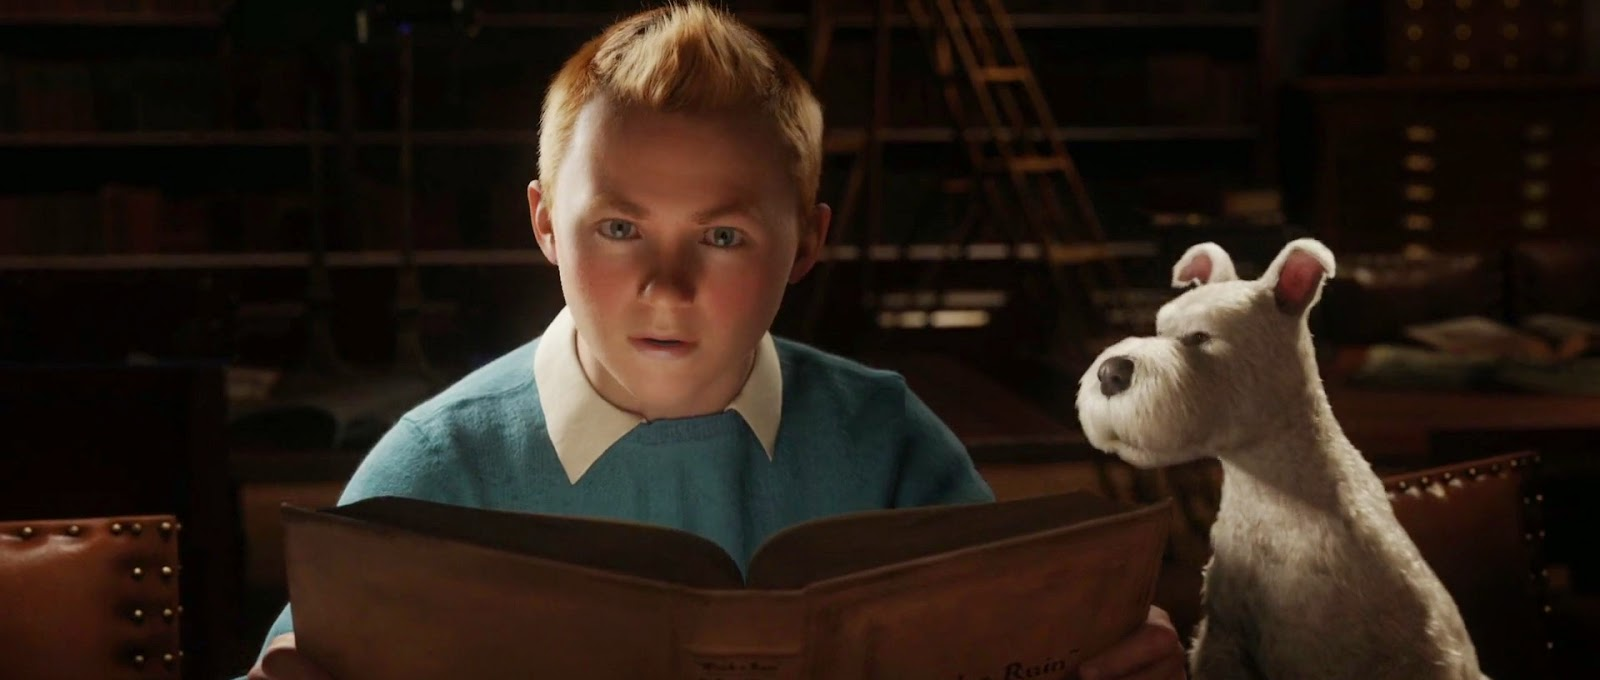 Tintin and Snowy in The Adventures of Tintin (2011)